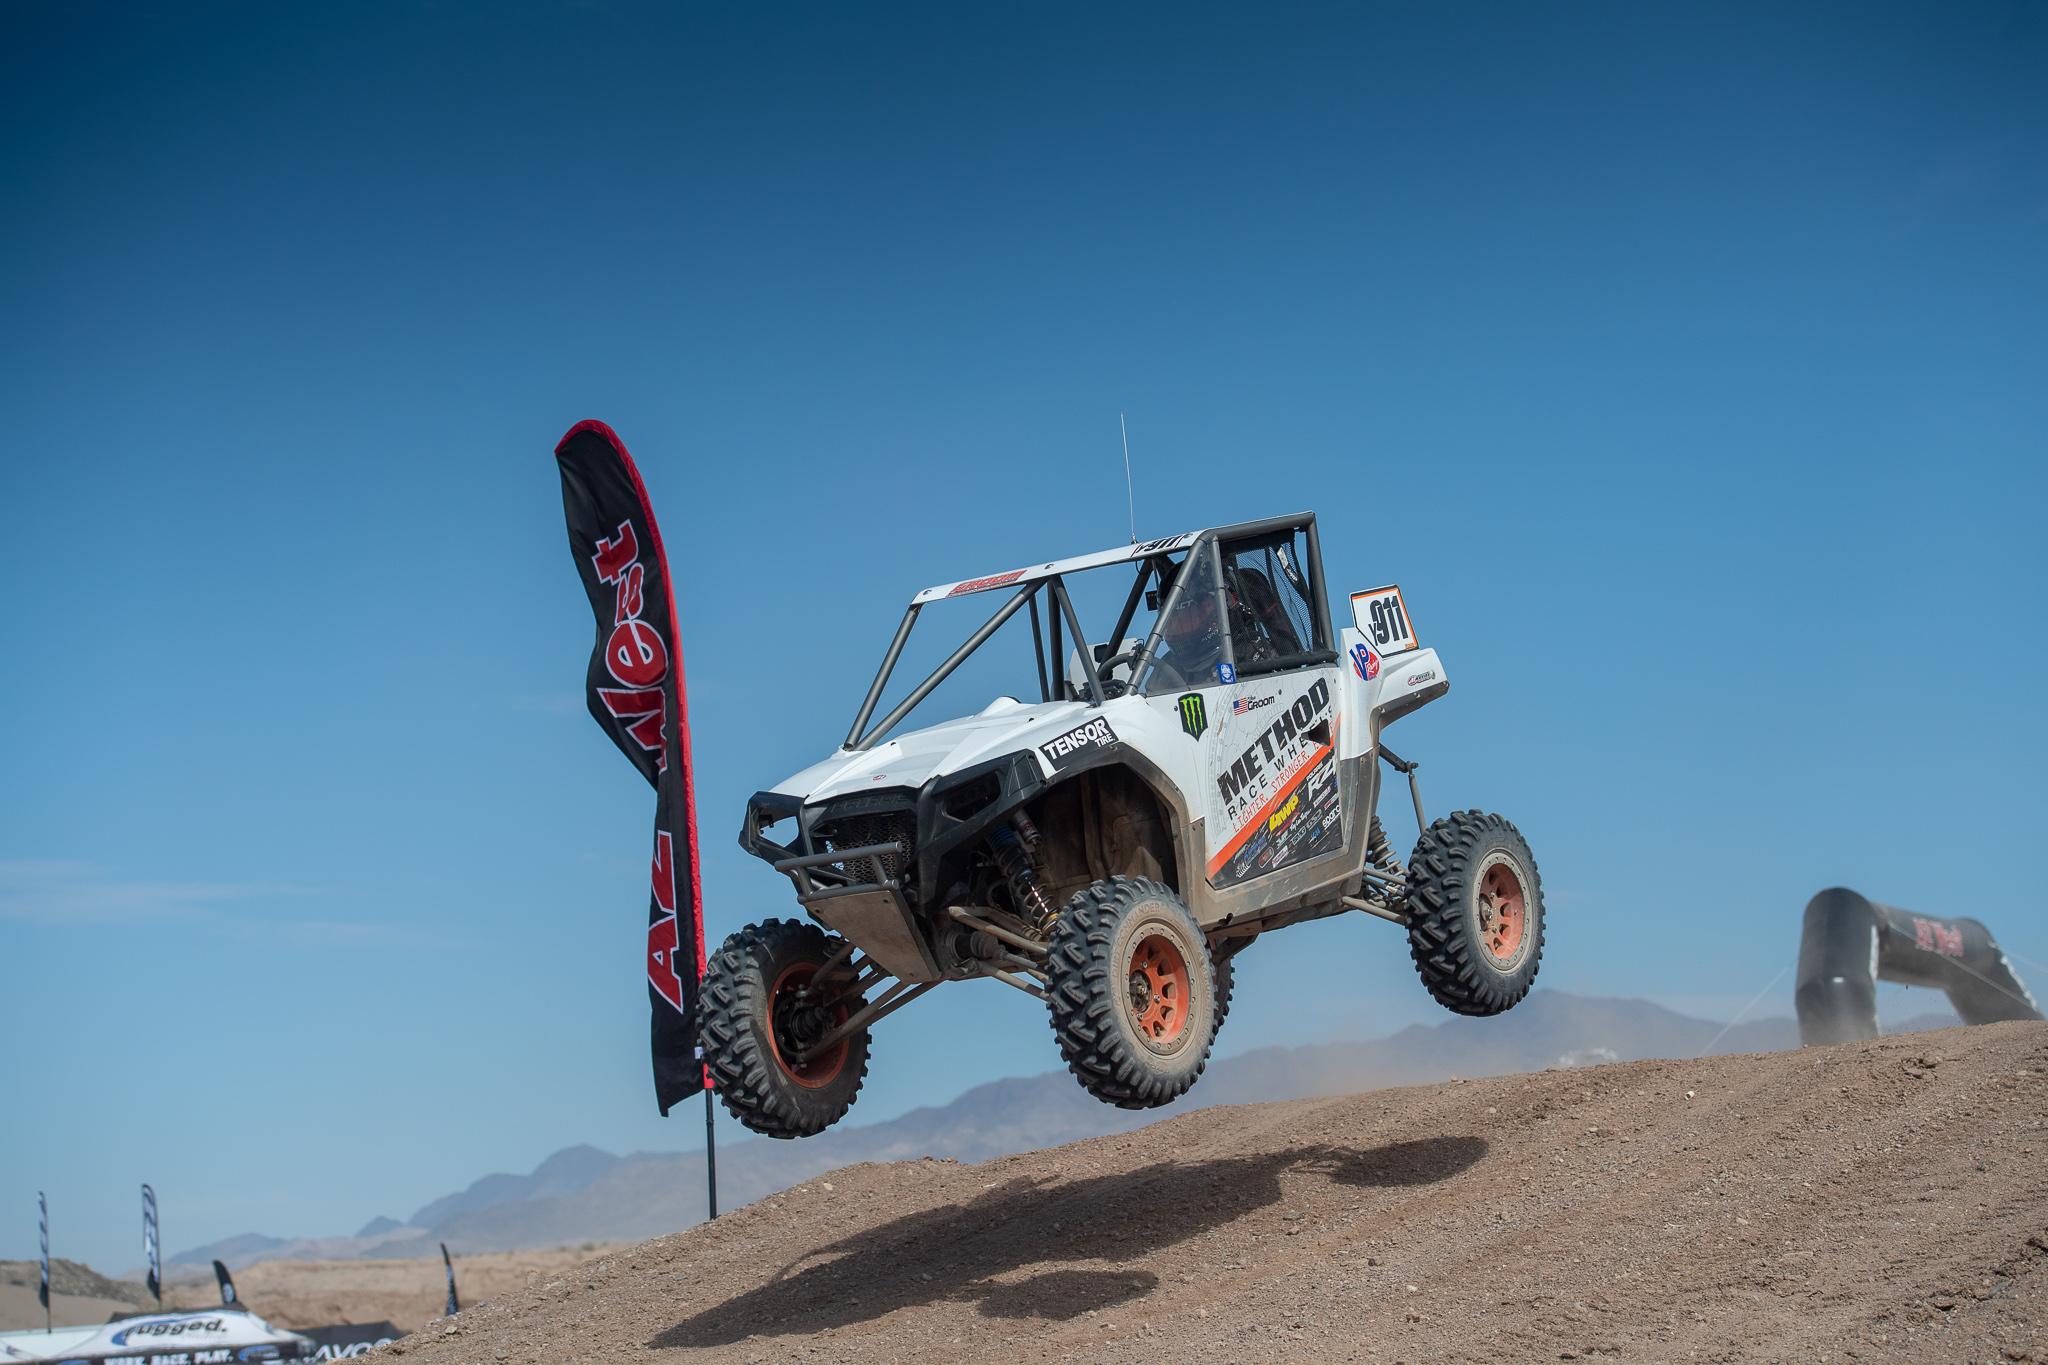 2020 UTV World Championship, Lake Havasu, Az